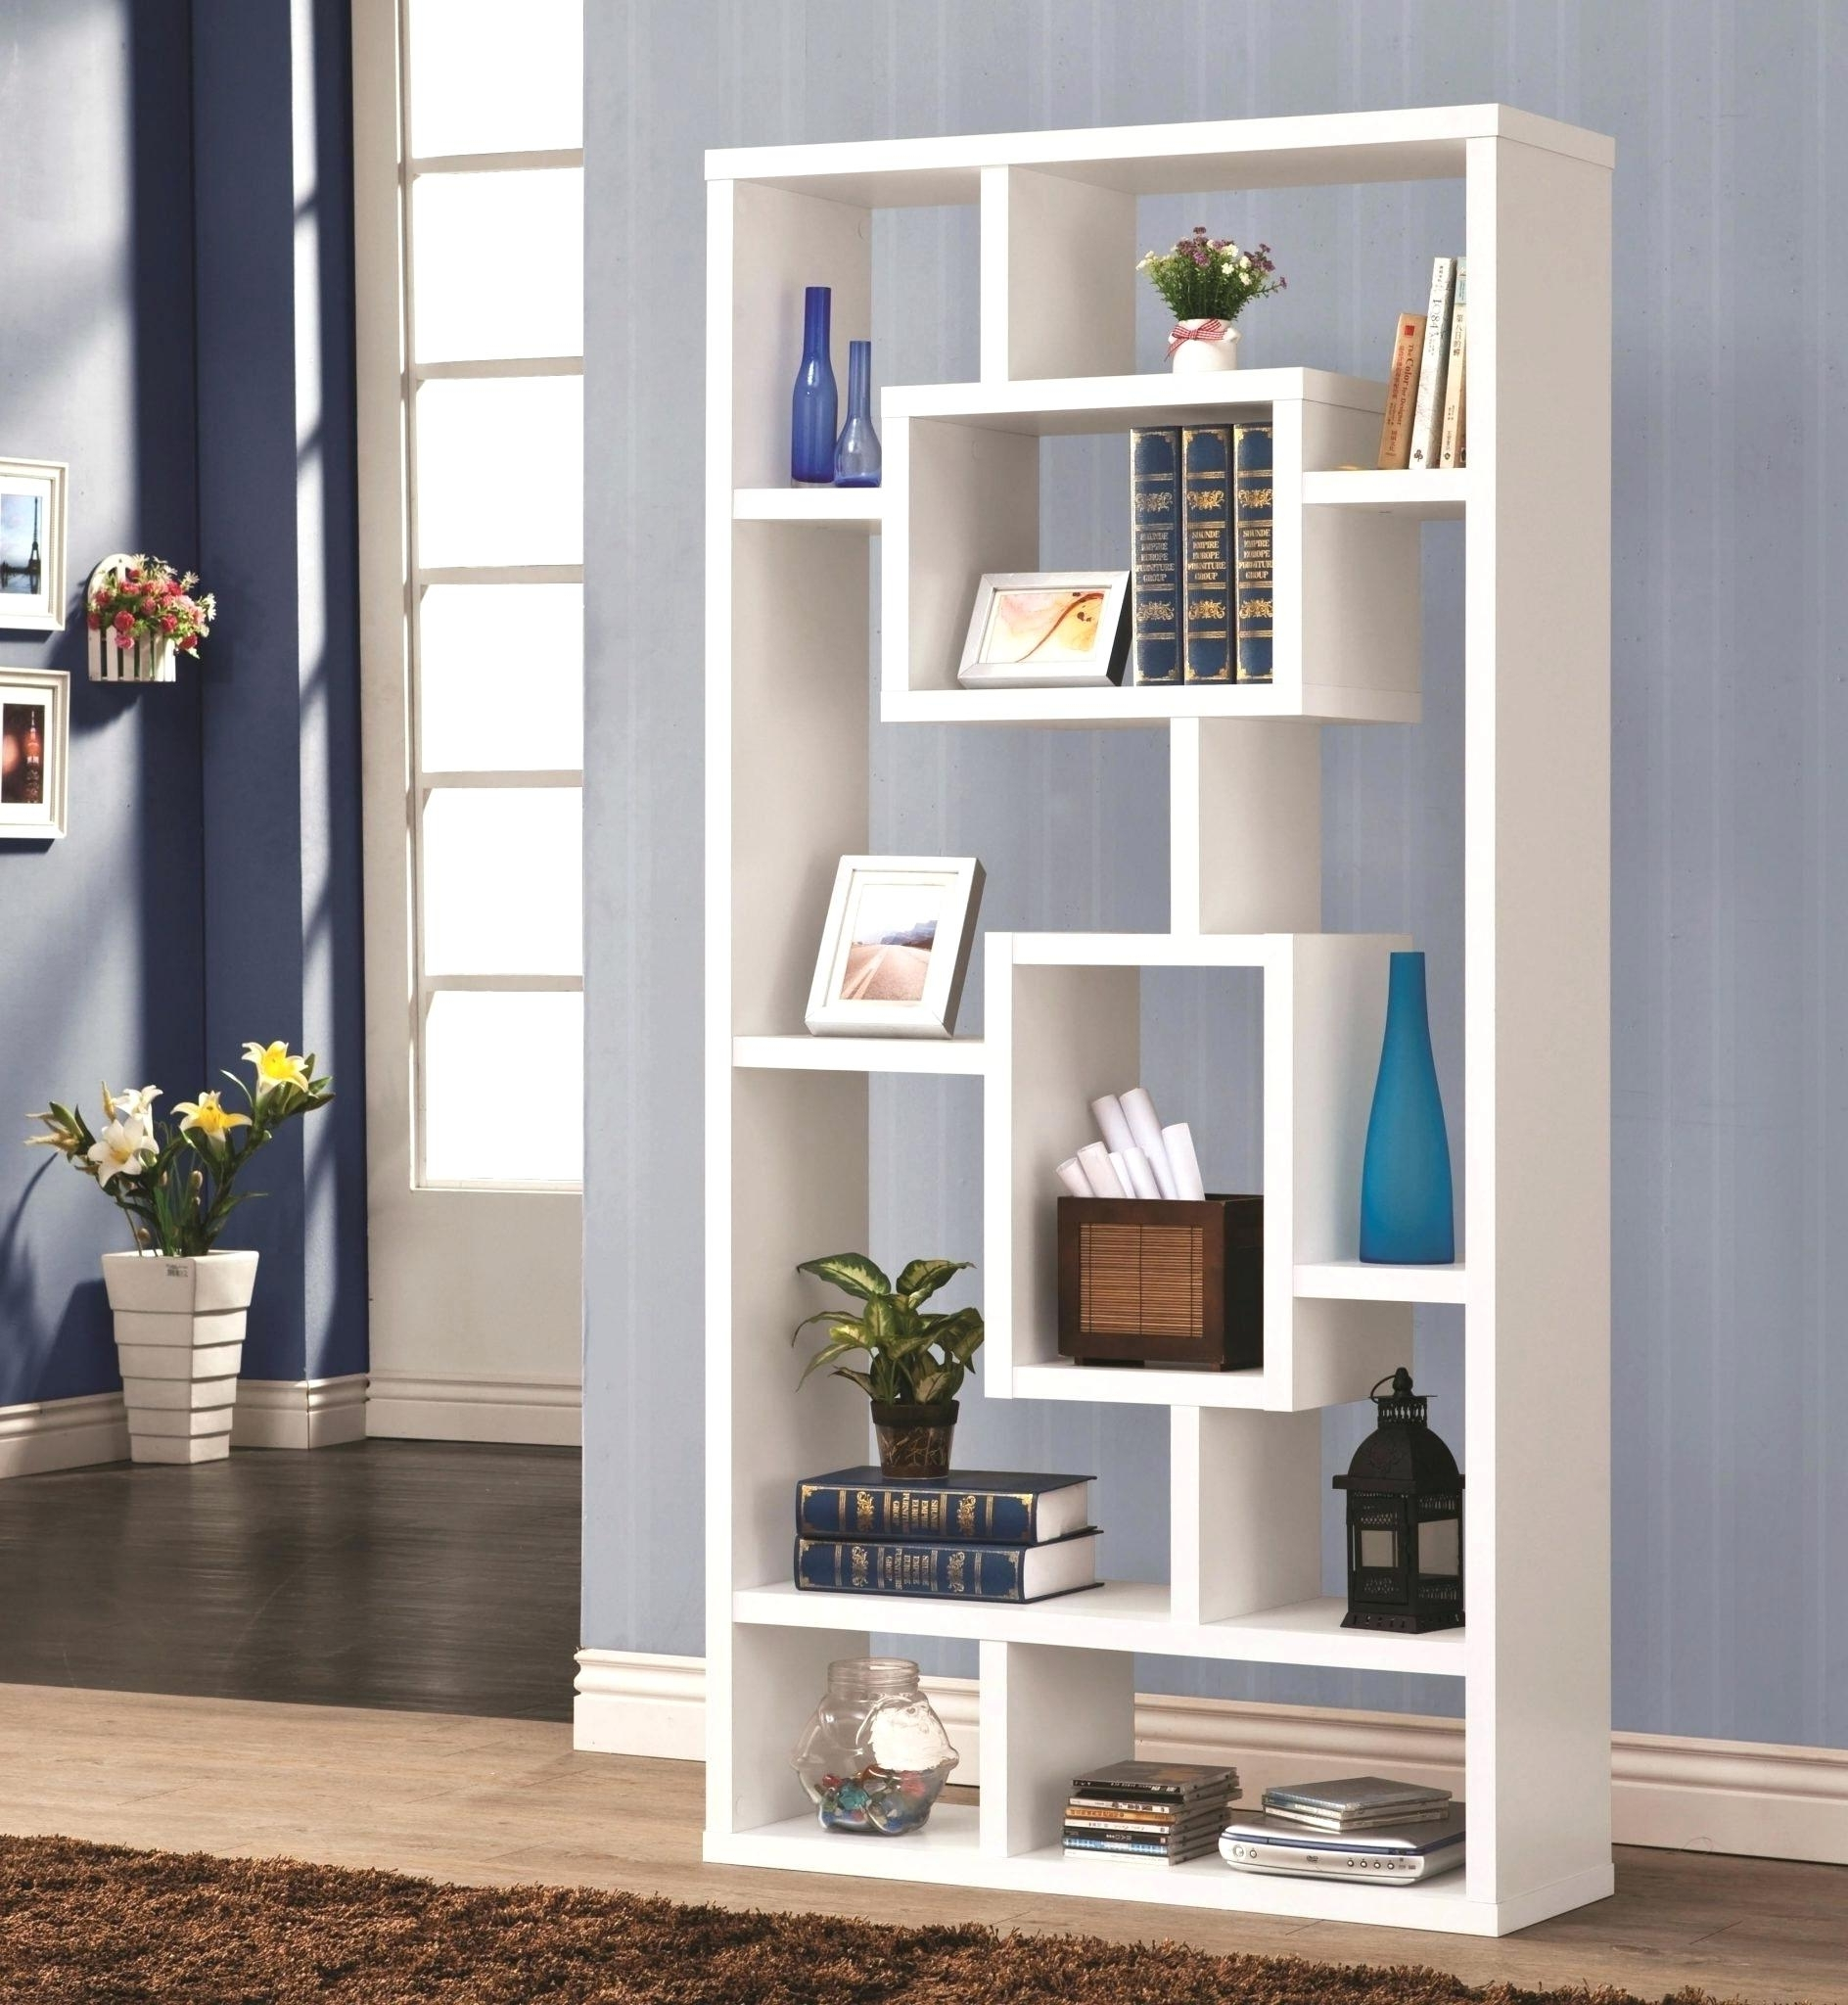 2018 Bookcases Target Target Bookcases With Baskets Cube Shelf Target Inside Espresso Target Bookcases (View 9 of 15)